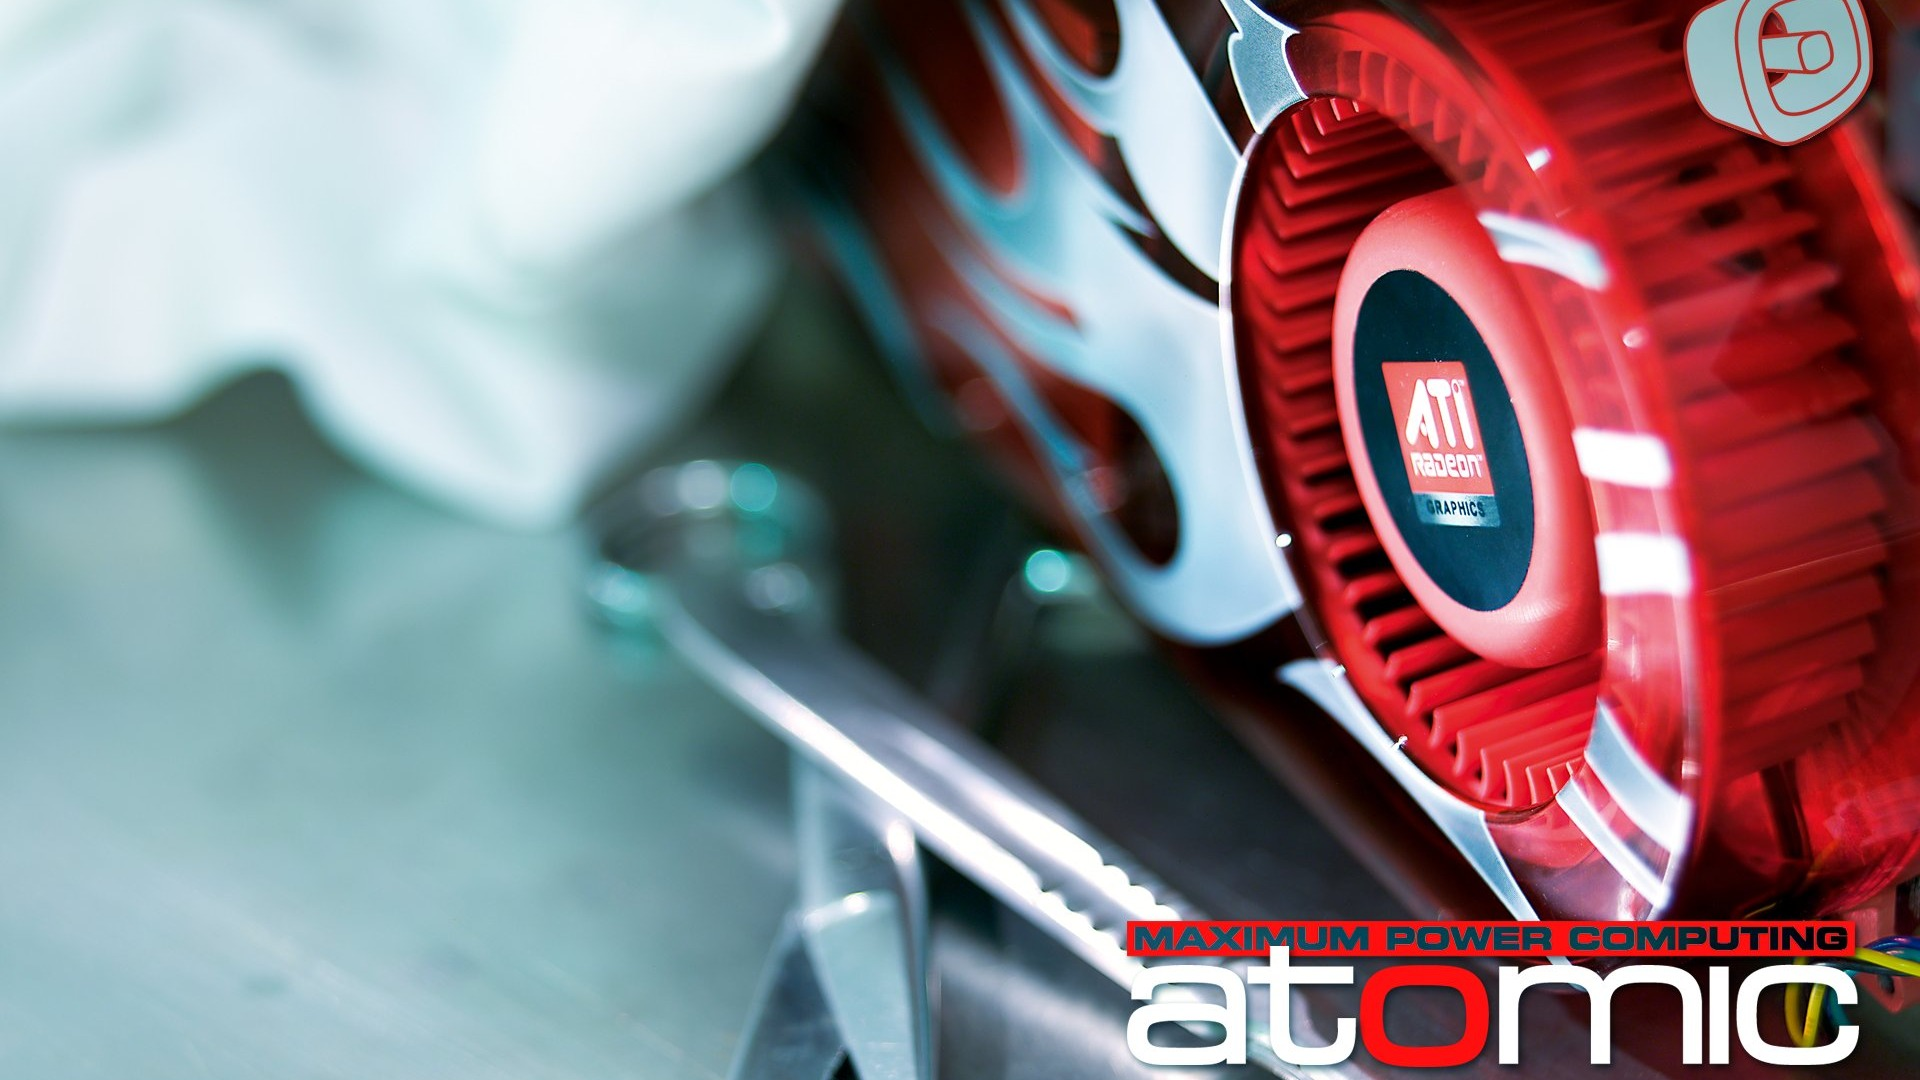 Amd Ati Ruby Pack For Radeon Fans Source x  amd